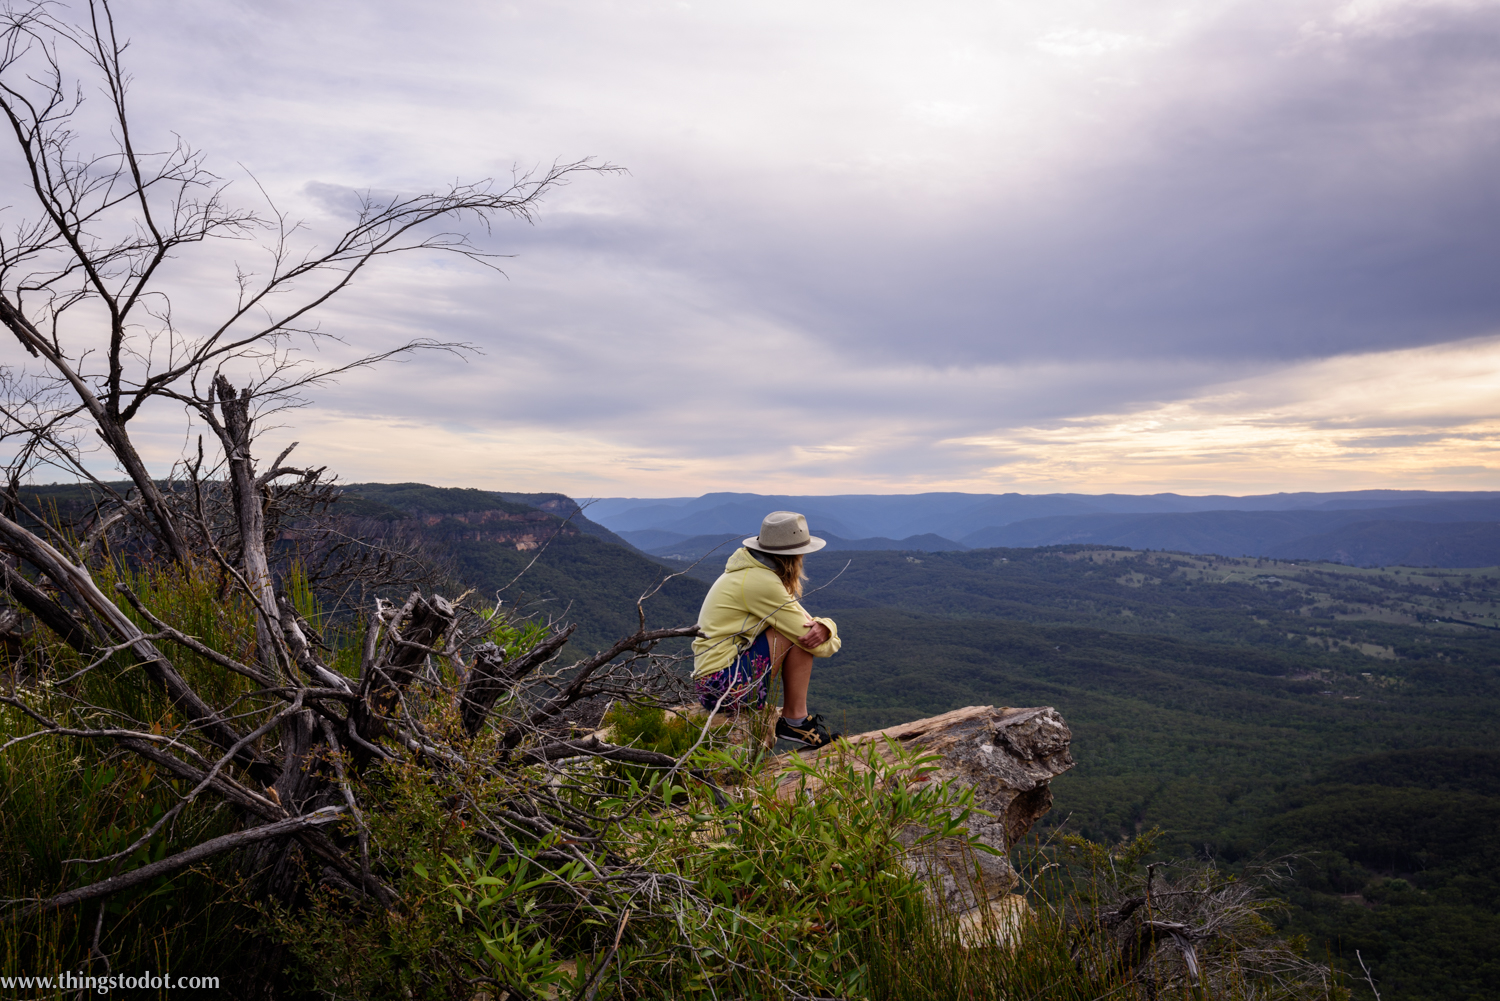 Blue Mountains,Cahill's Lookout, New South Wales, Australia. Photo: Gunjan Virk. Image©www.thingstodot.com.